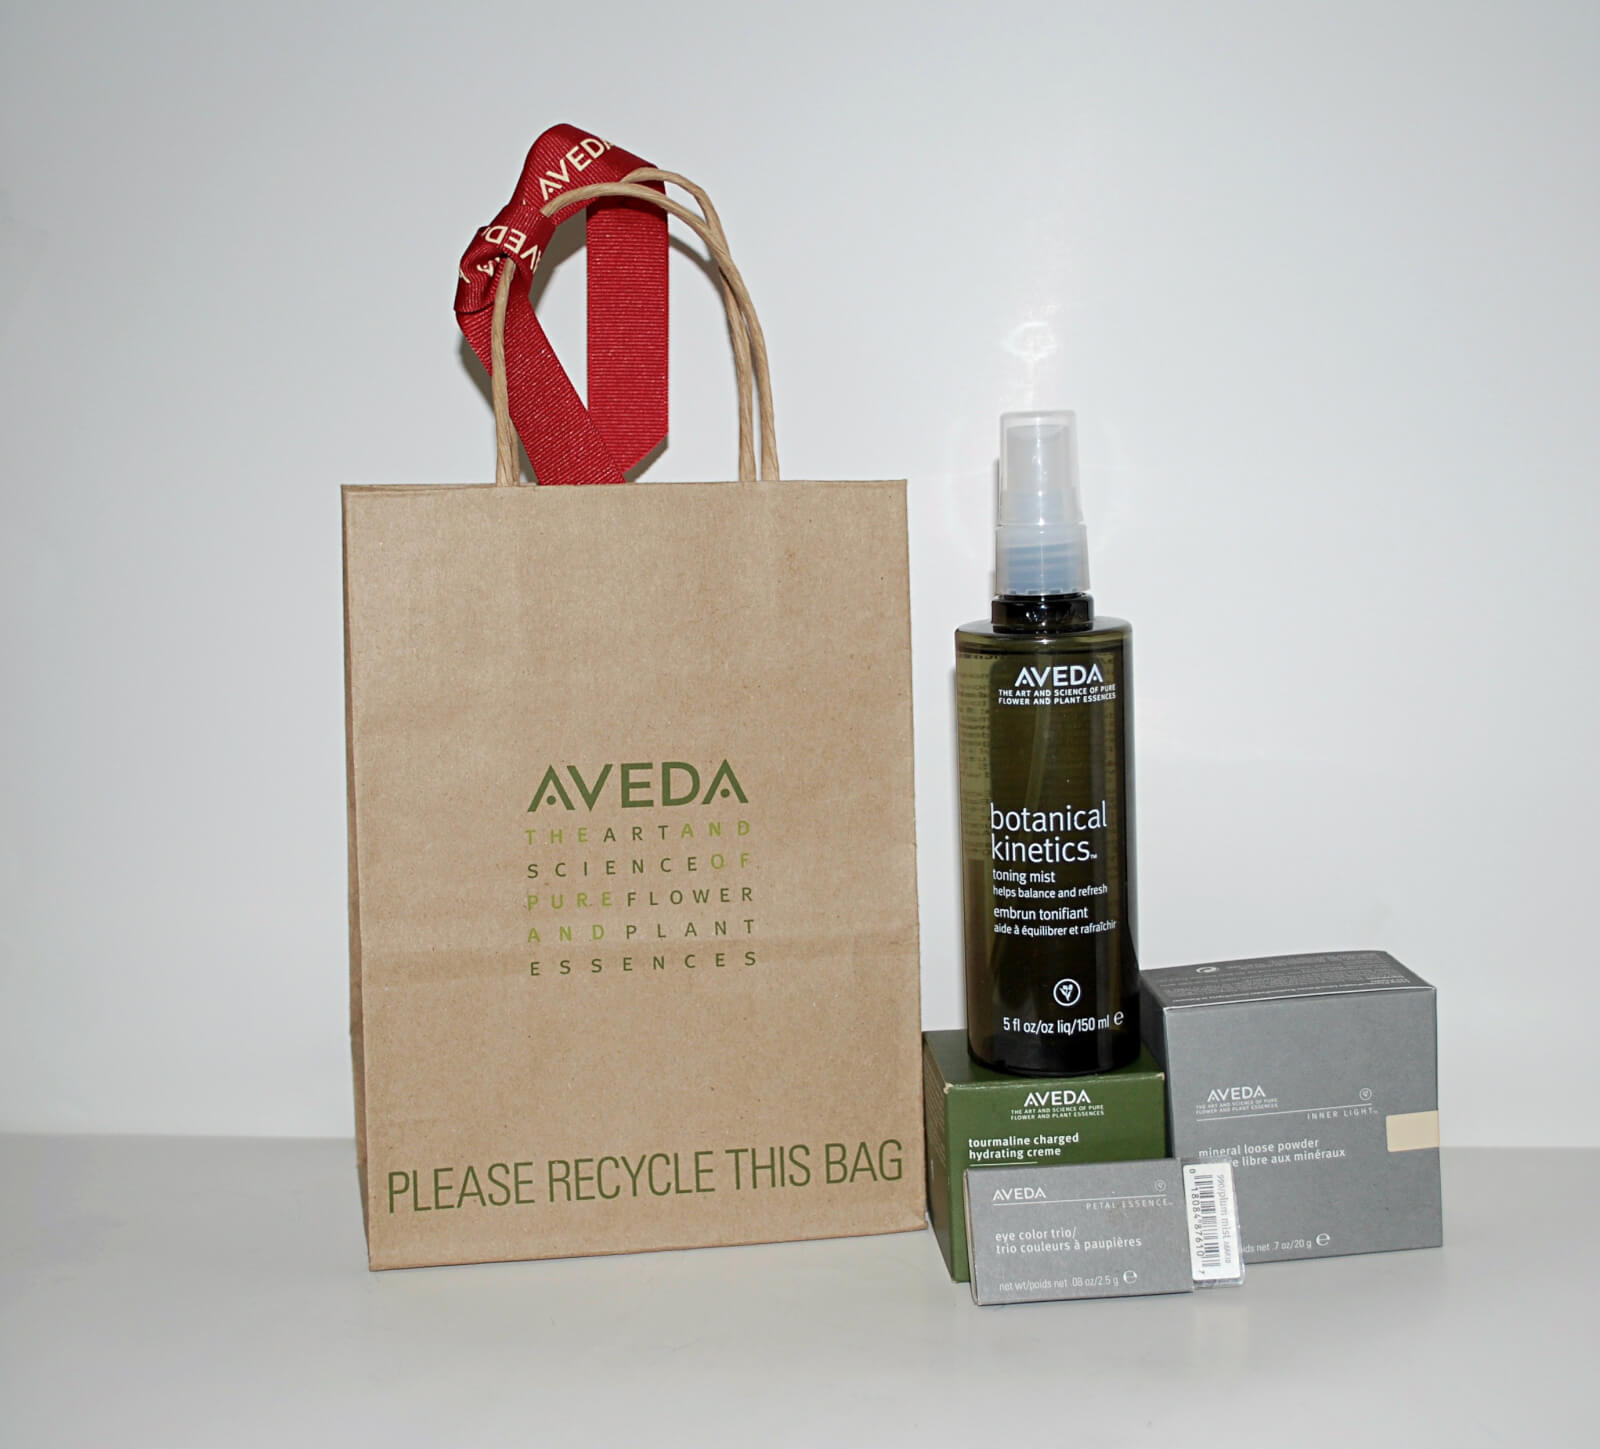 Veda products, aveda winnipeg, aveda skin cream products